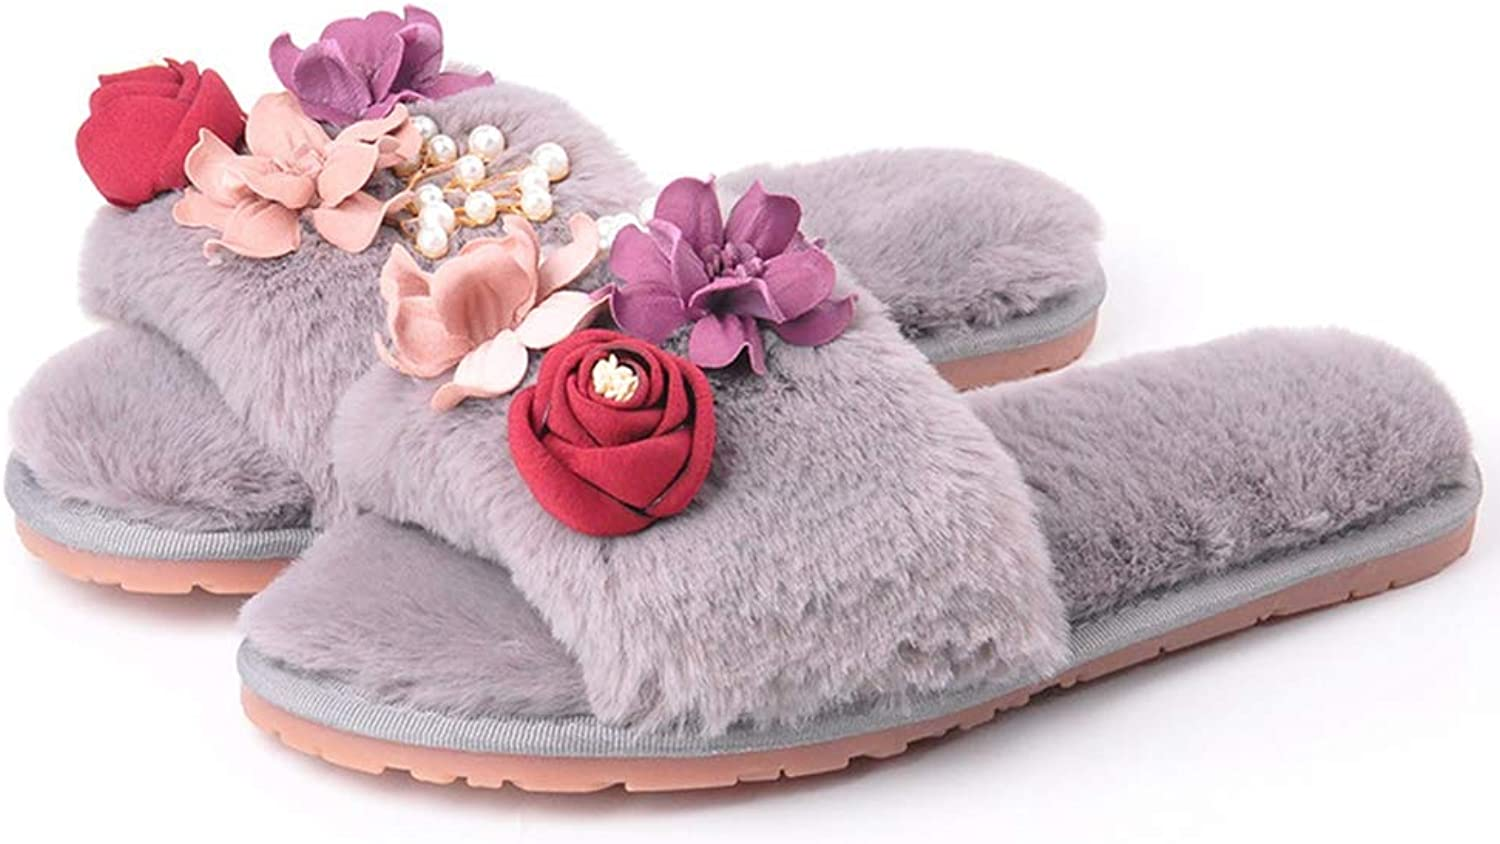 T-JULY Women's Flower Pearl Fur Slippers Soft Cozy Plush Autumn Winter Warm Furry Slip On Slides Home shoes